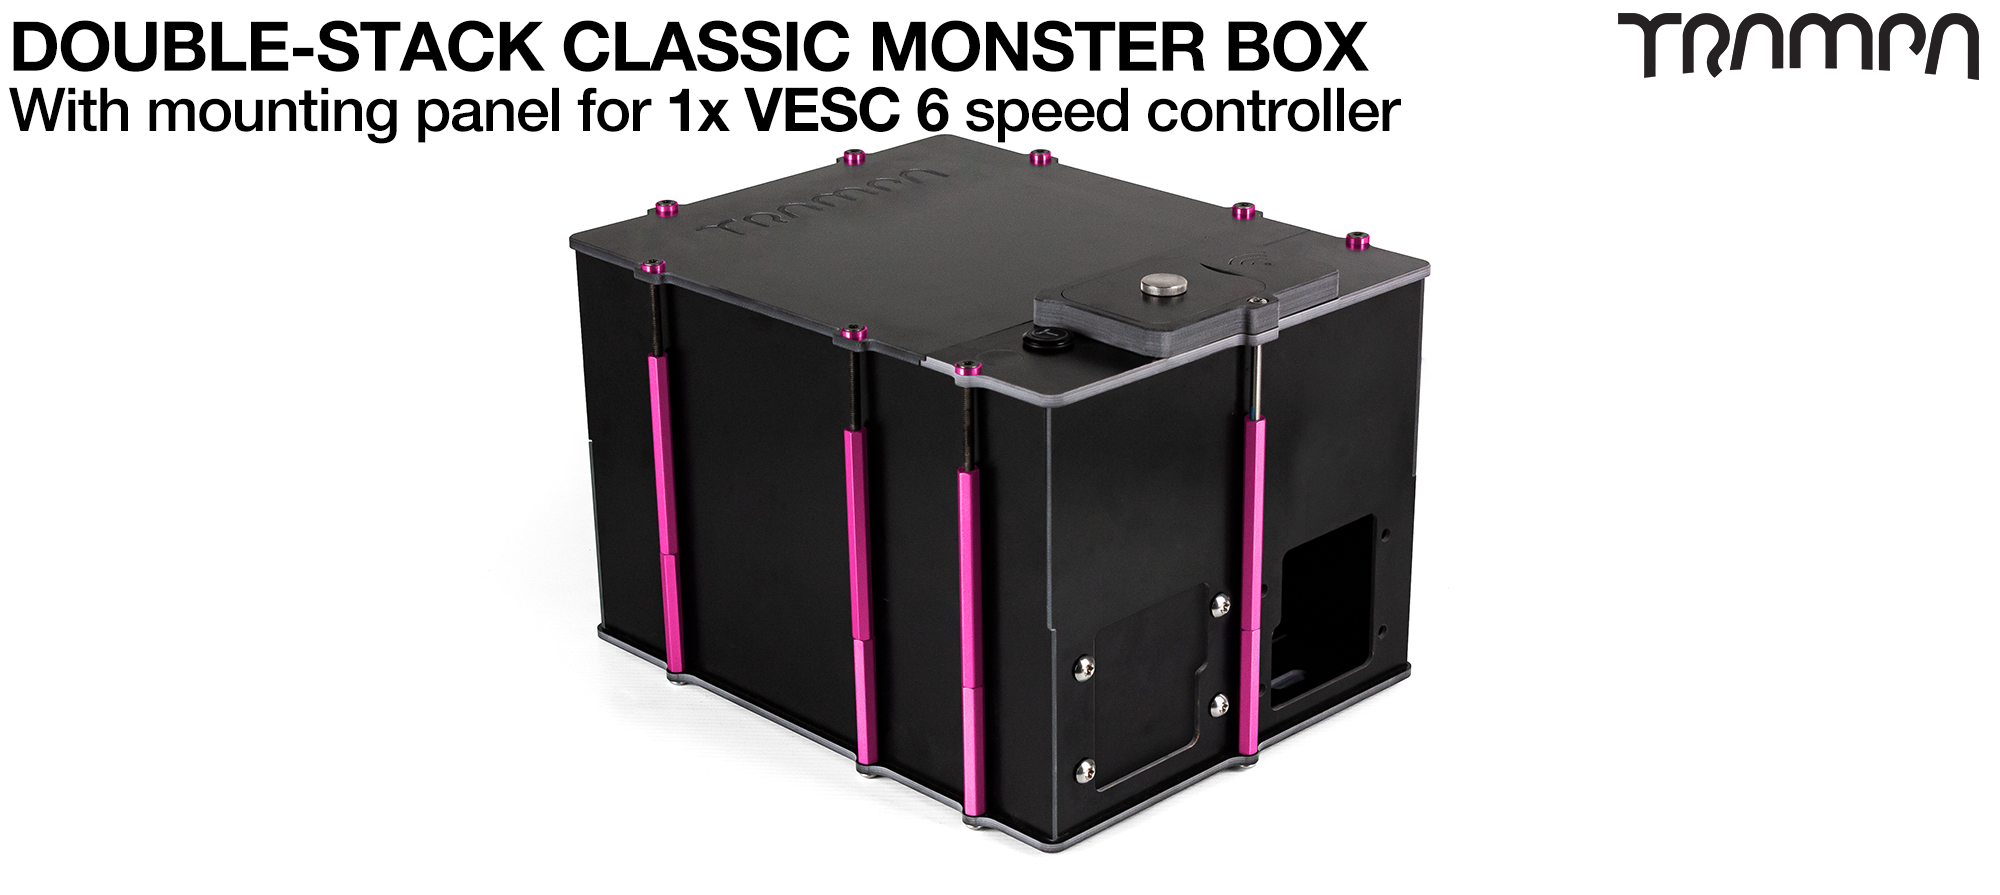 Classic MONSTER Box MkV DOUBLE STACKER fits 168x 18650 cells to give 12s14p 42A or 4x22000 mAh Li-Po Cells to give 44mAh & has Panels to fit 1x VESC 6 Internally.